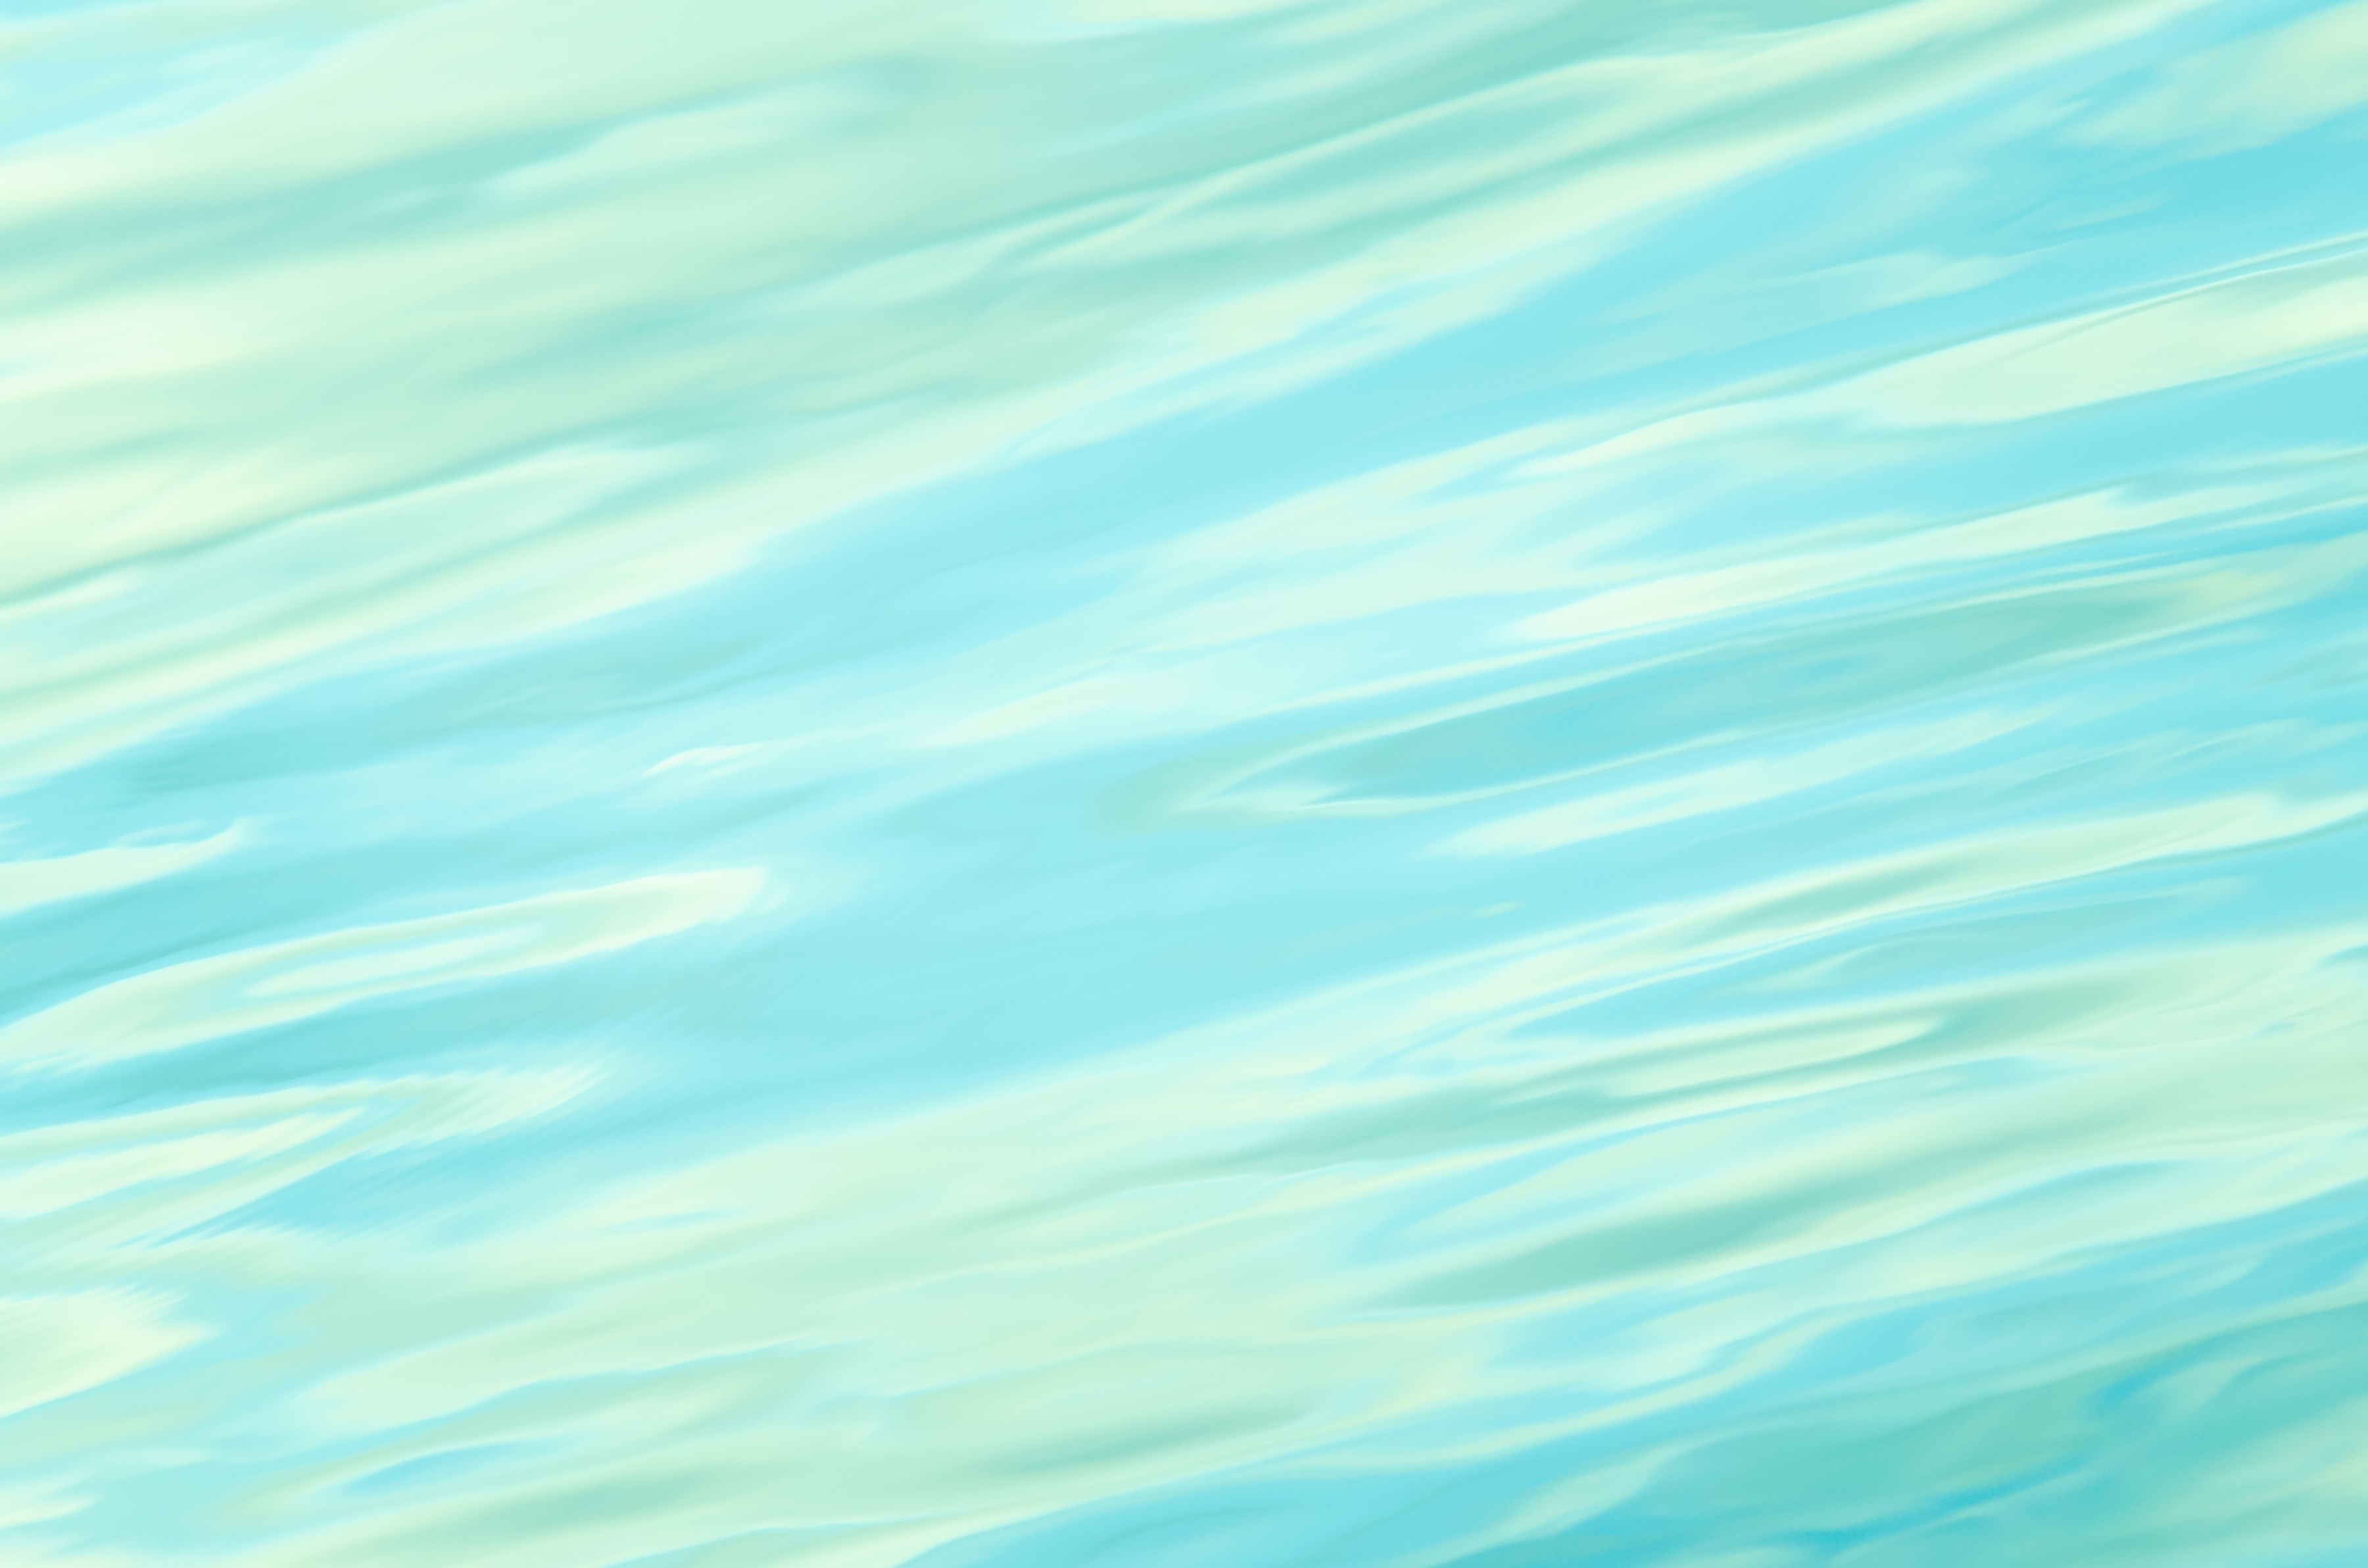 Waves Background.jpg